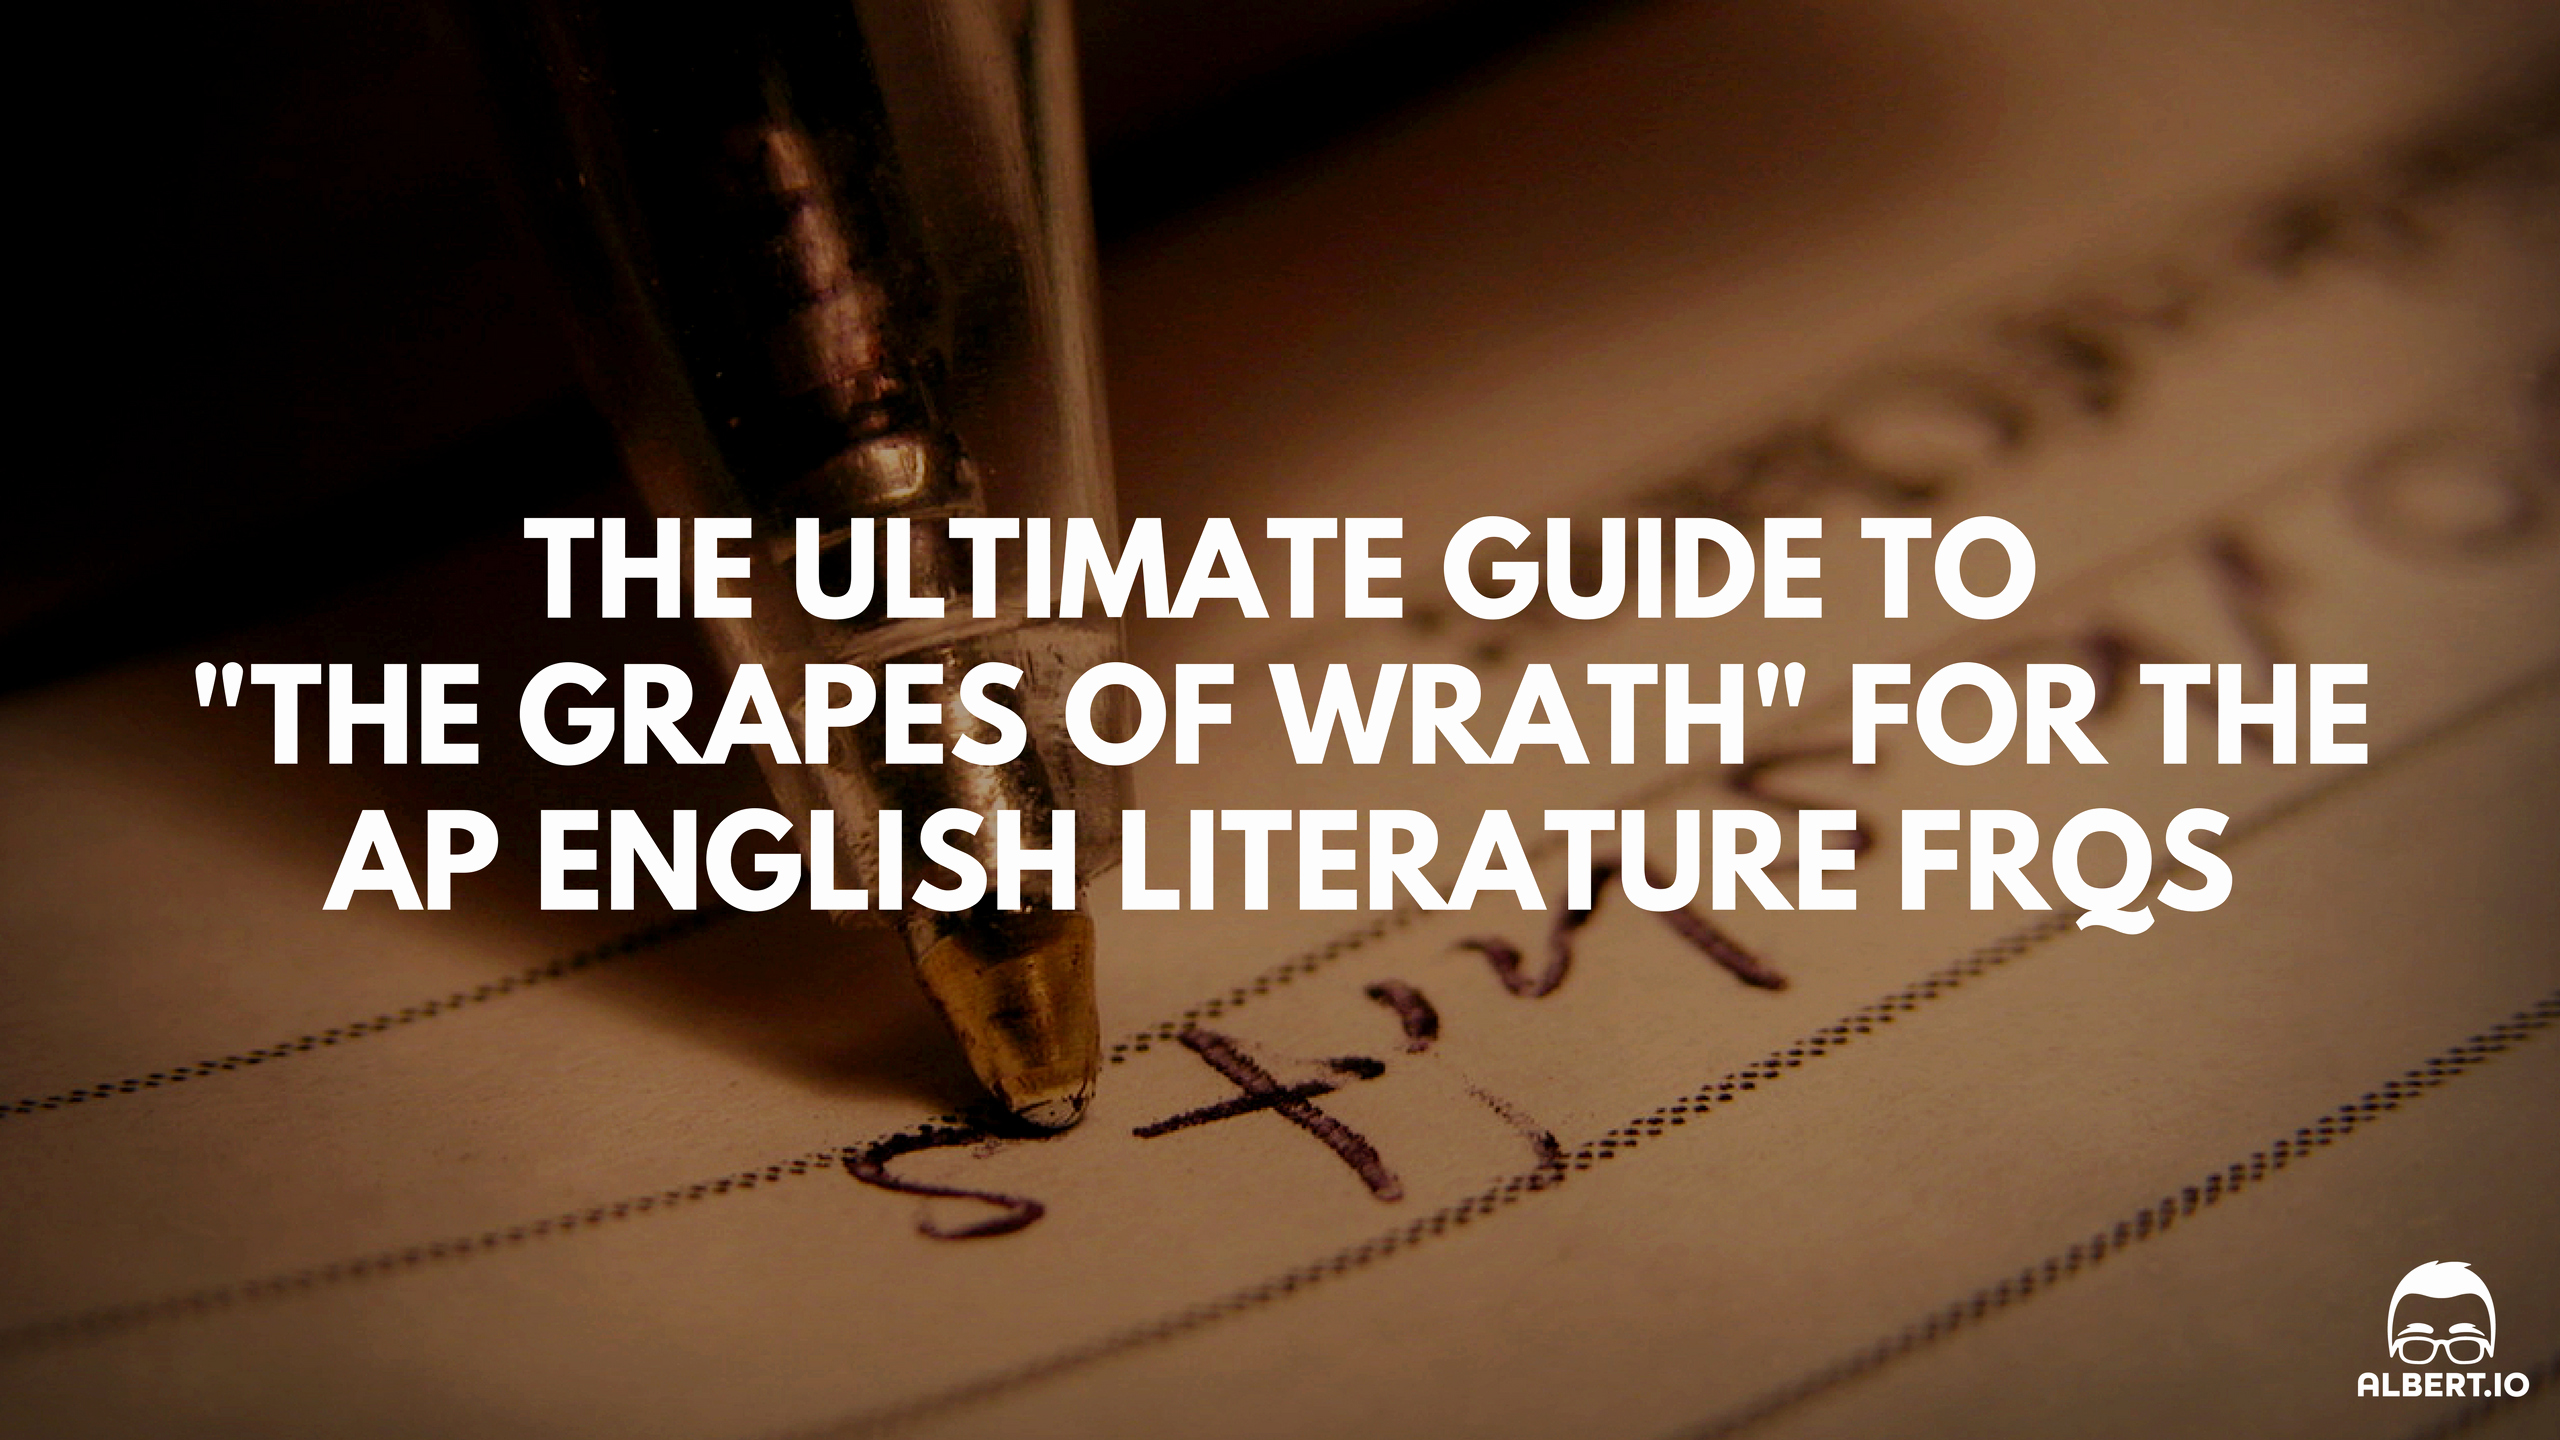 Grapes Of Wrath Litcharts Awesome Grapes Of Wrath Literary Devices Cindy S Blog the Grapes